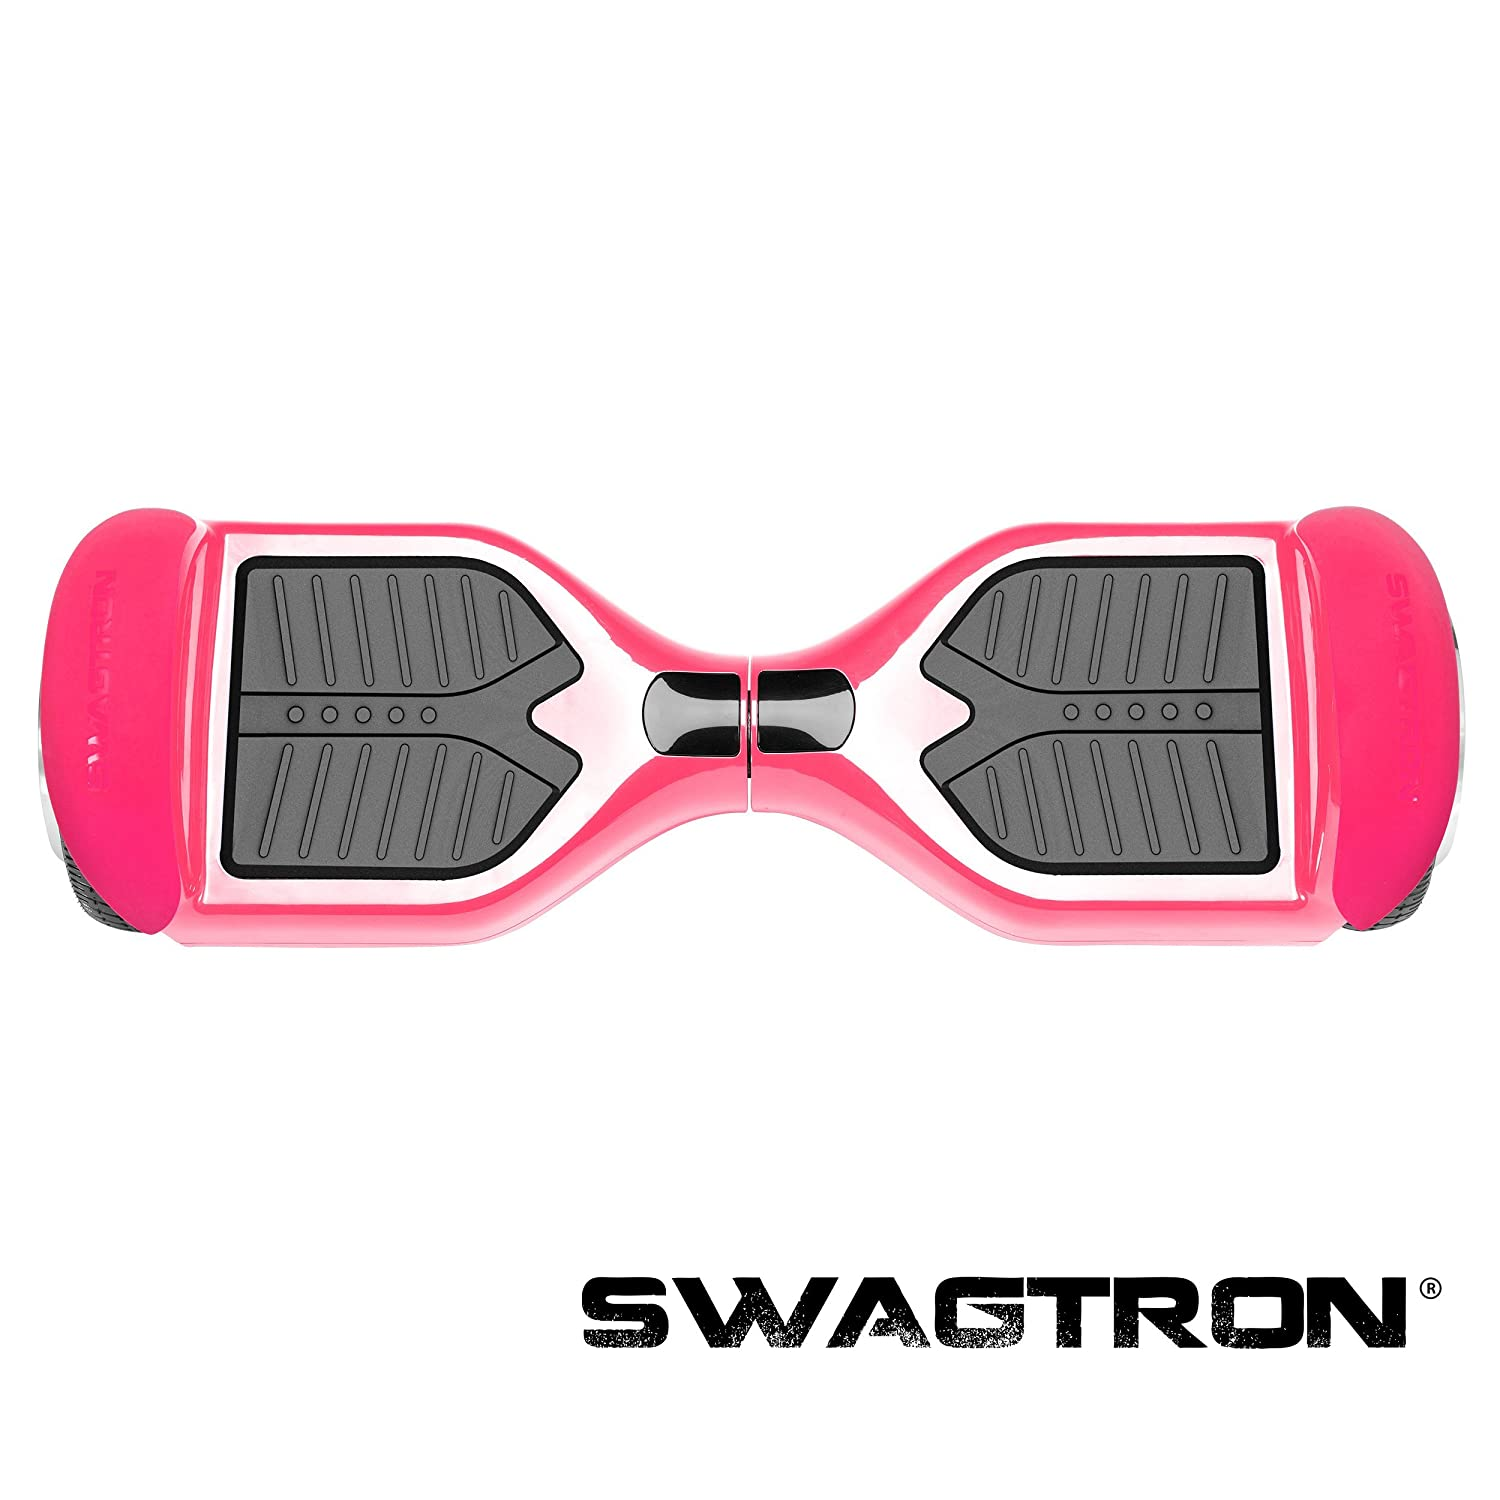 Swagtron T1 Hoverboard - World's First UL2272 certified Hoverboard